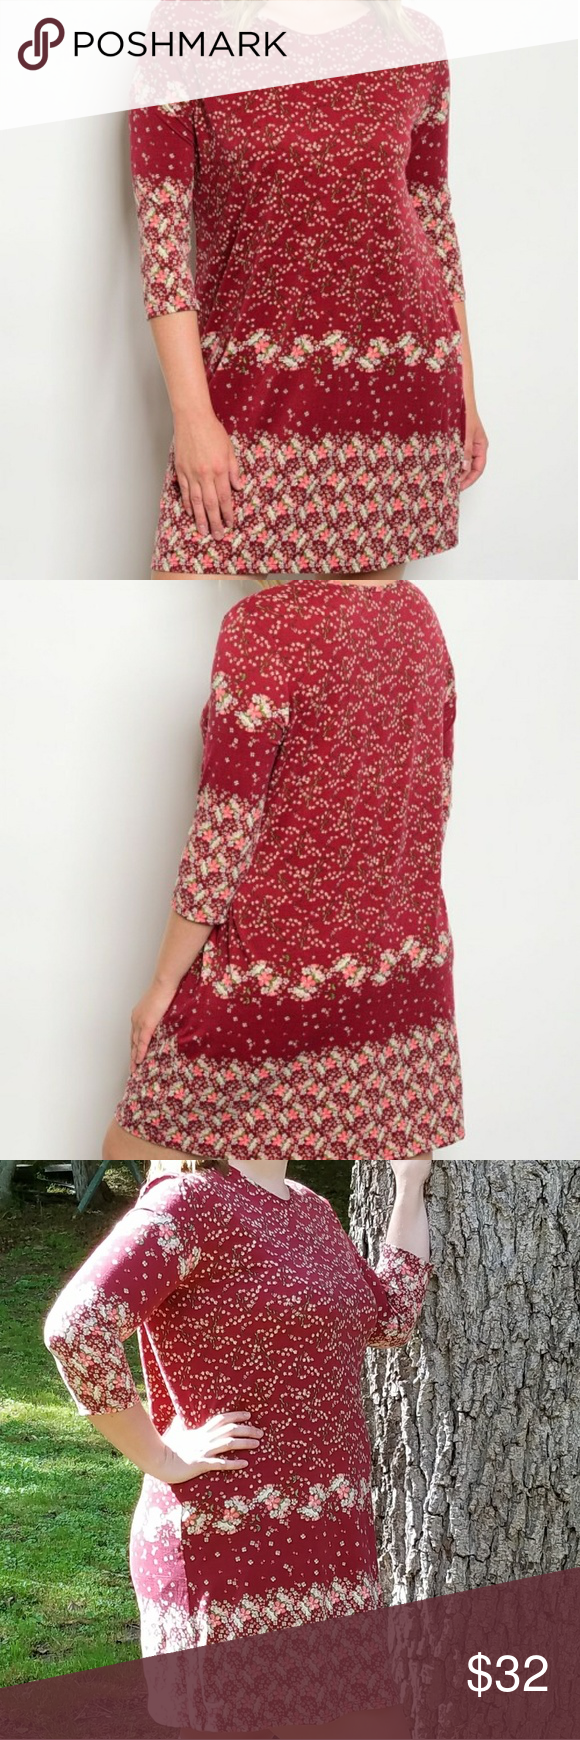 Plus Size 3/4 Sleeve floral Tunic Dress. Boutique floral burgundy dress  94% polyester 6% spandex 1x 21.5 inches underarm to underarm 27.5 inches underarm to hem 2x 22.5 inches underarm to underarm 28.5 inches under arm to hem Dresses